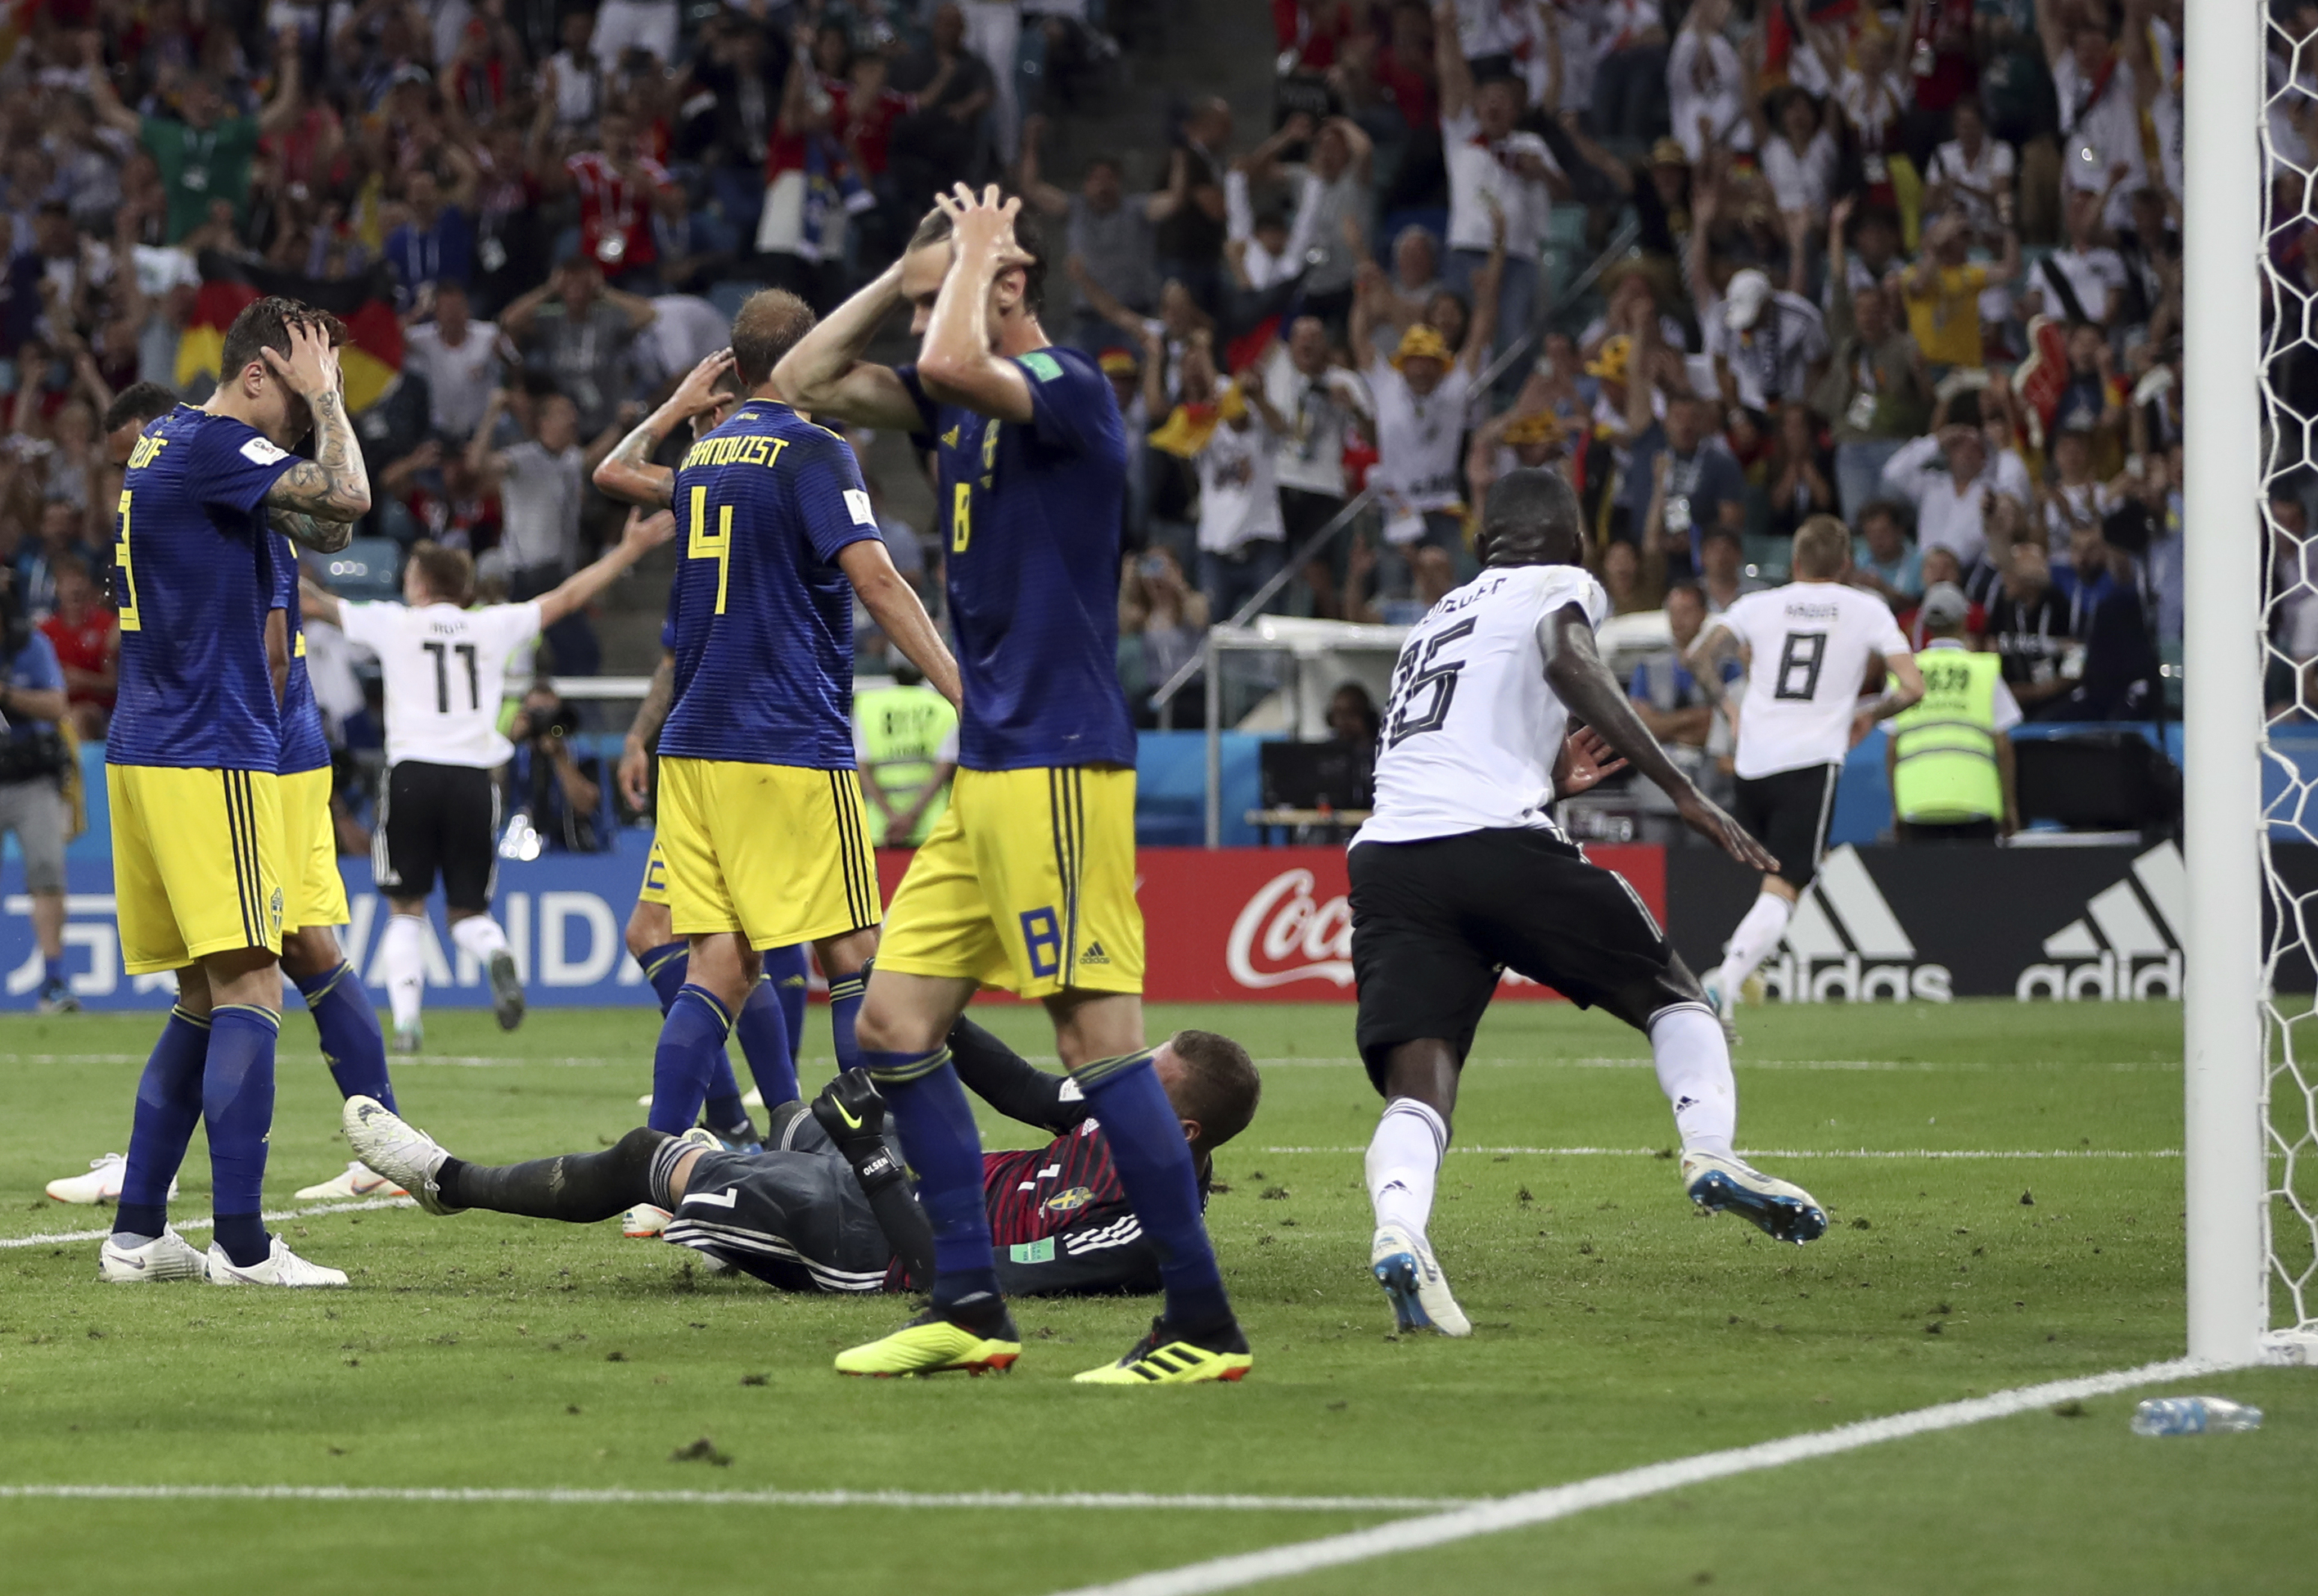 <div class='meta'><div class='origin-logo' data-origin='none'></div><span class='caption-text' data-credit='Thanassis Stavrakis/AP Photo'>Sweden players react after Germany's Toni Kroos, right, scores his side's second goal during the group F match in the Fisht Stadium in Sochi, Russia, Saturday, June 23, 2018.</span></div>